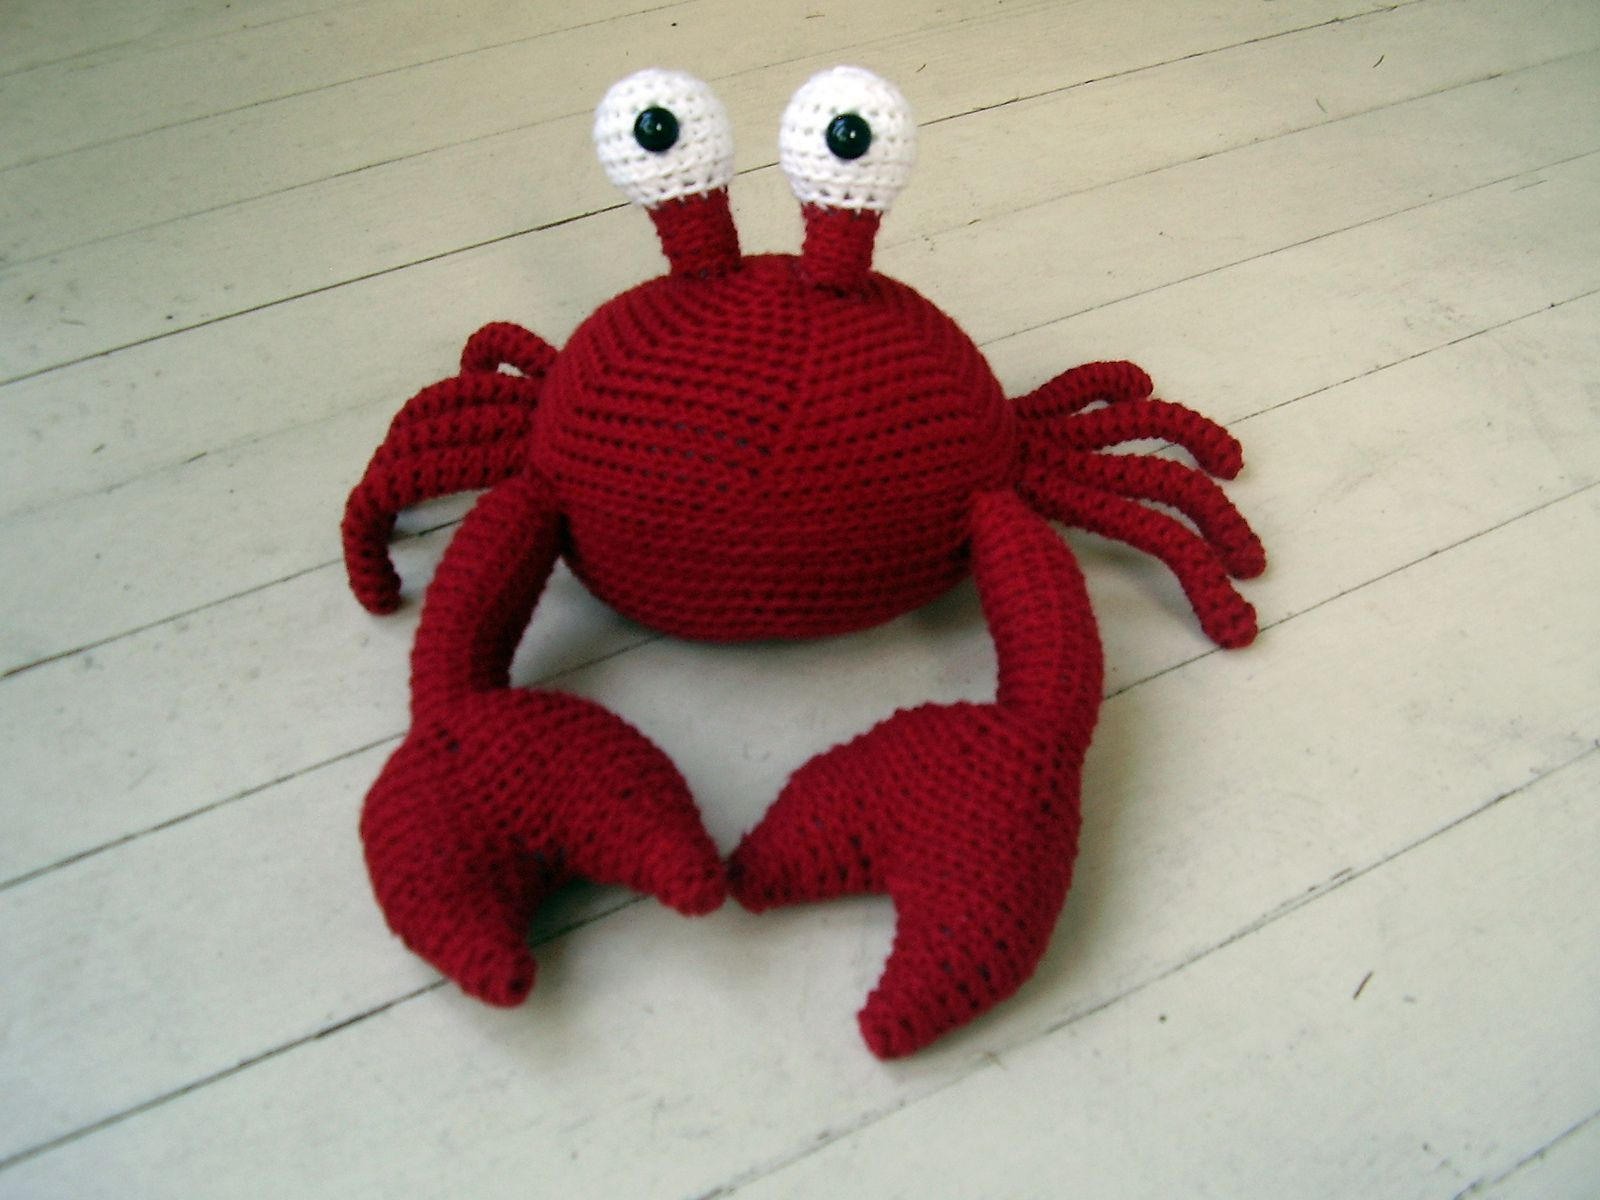 Ravelry: freshstitches' He's a little crabby!